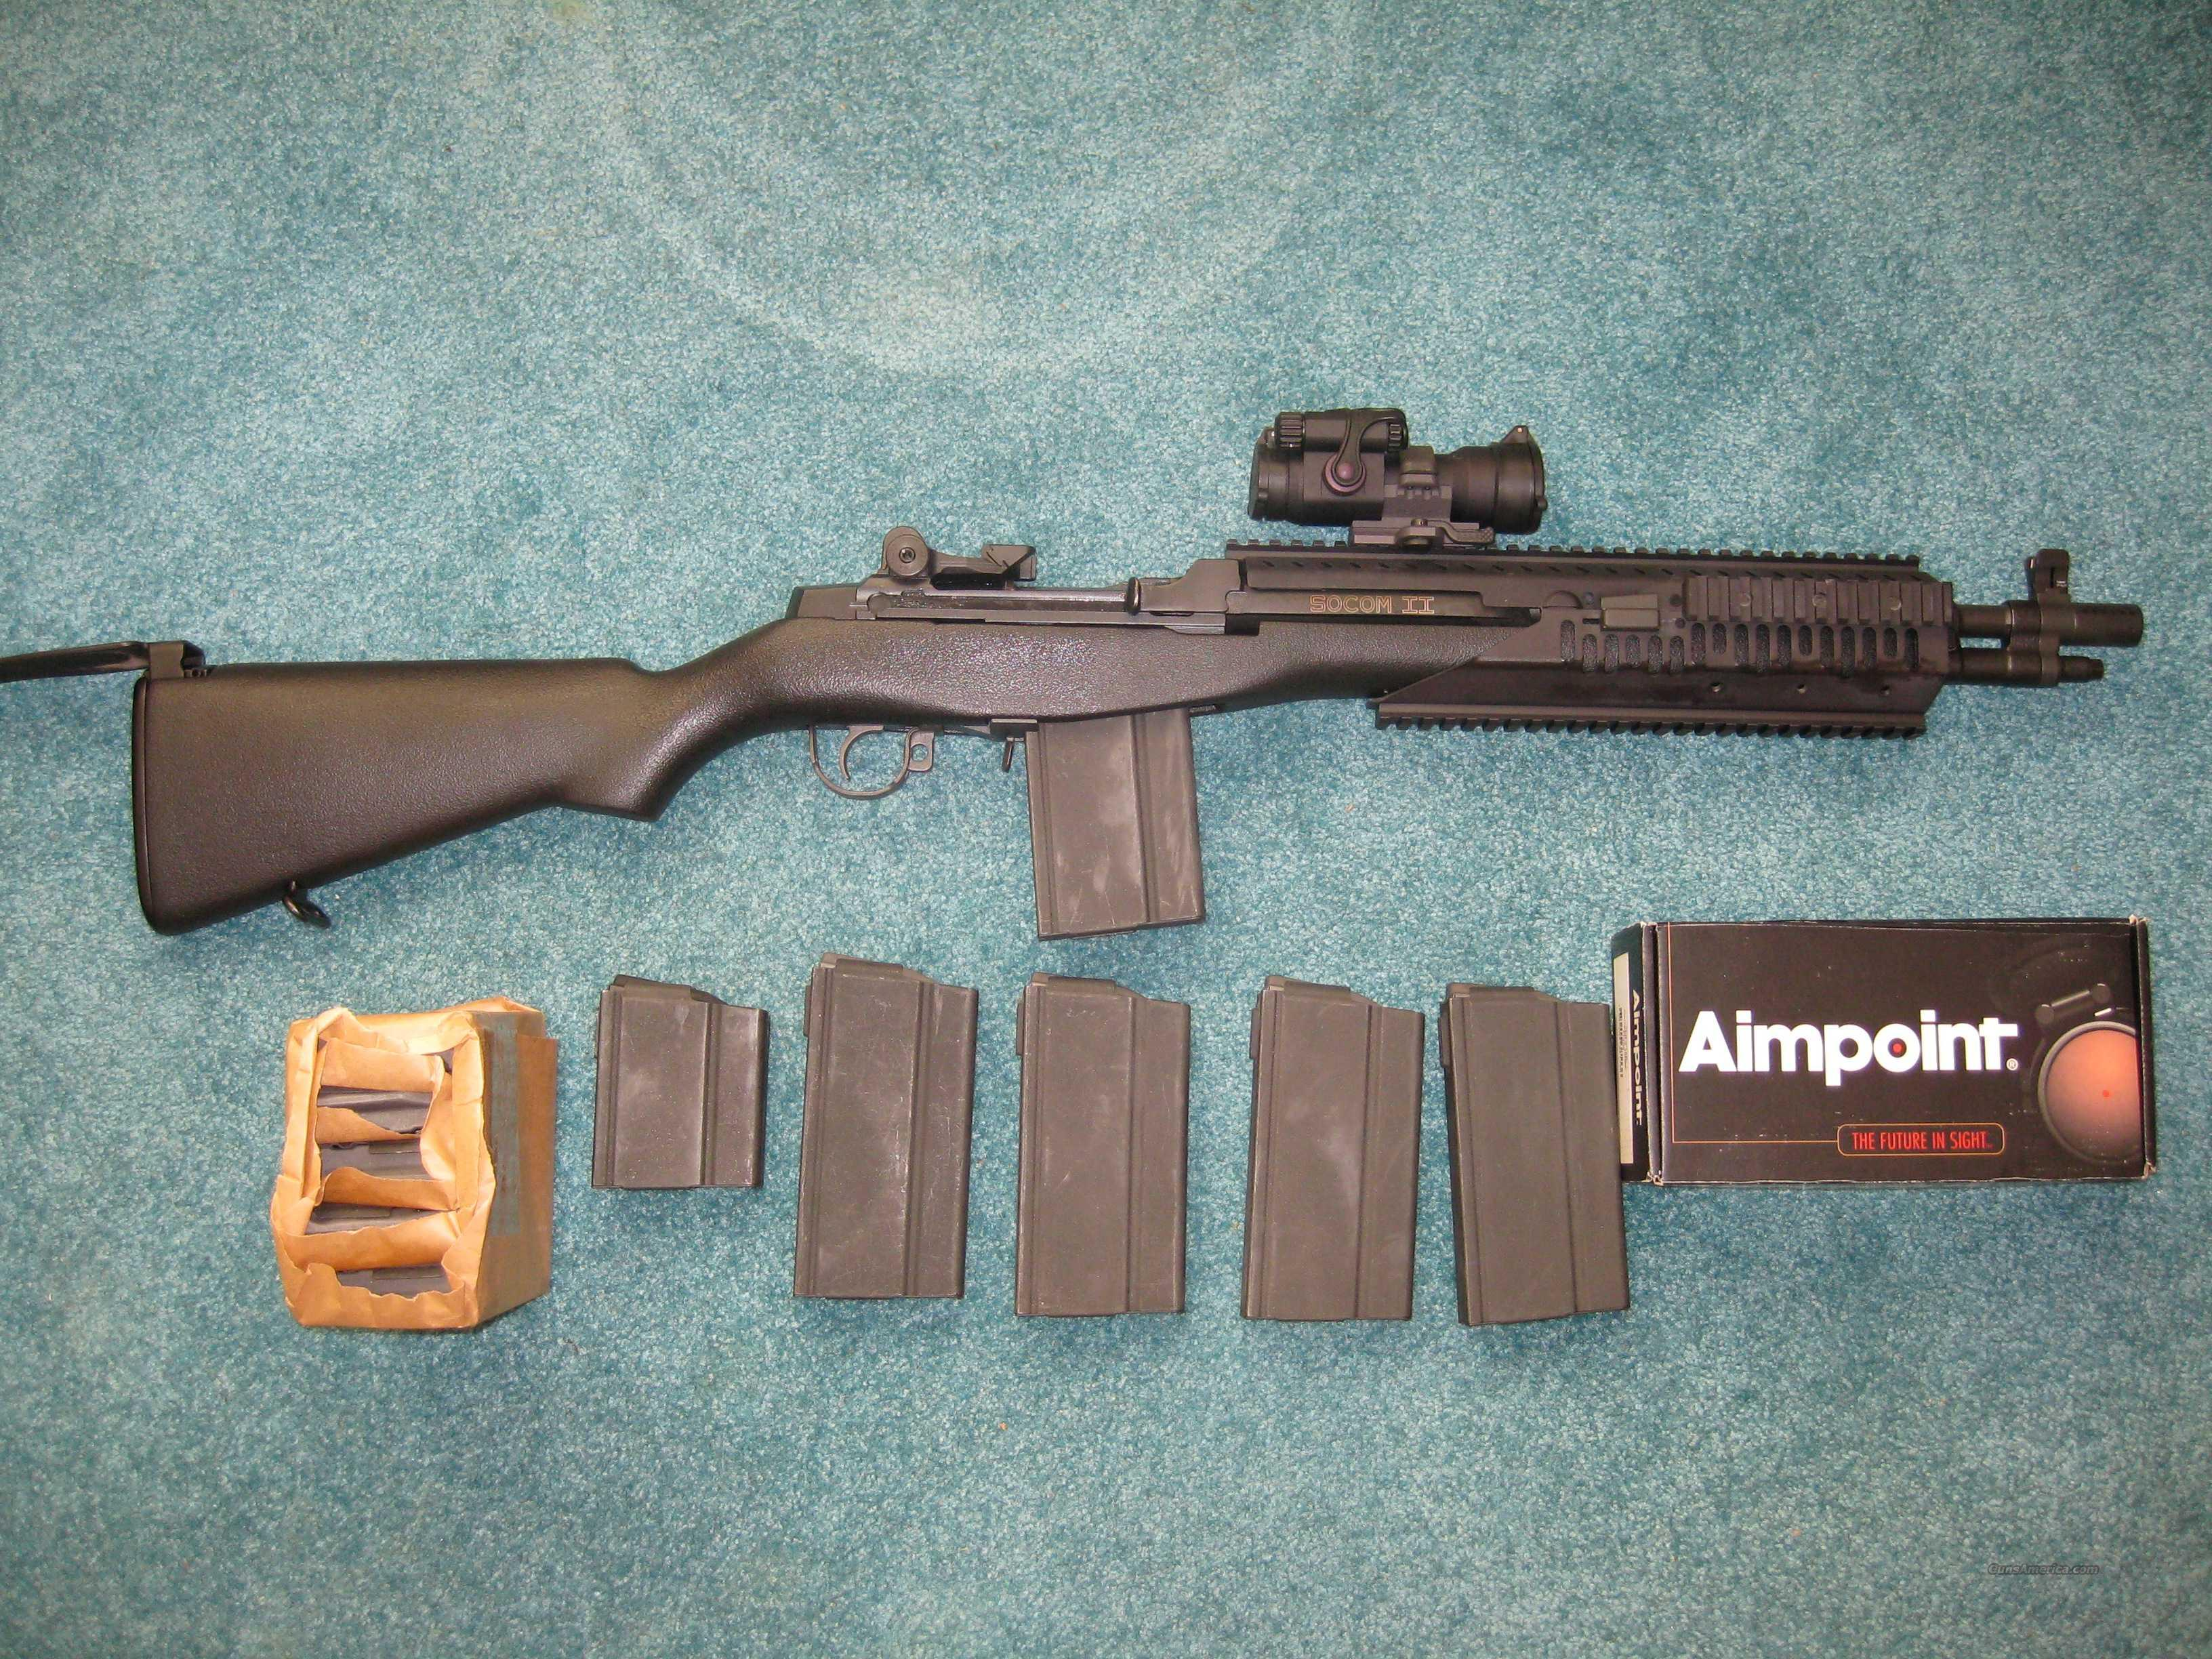 SPRINGFIELD M1A SOCOM II QUAD RAIL, AIMPOINT, 11 MAGS, 500 ROUNDS PACKAGE  Guns > Rifles > Springfield Armory Rifles > M1A/M14